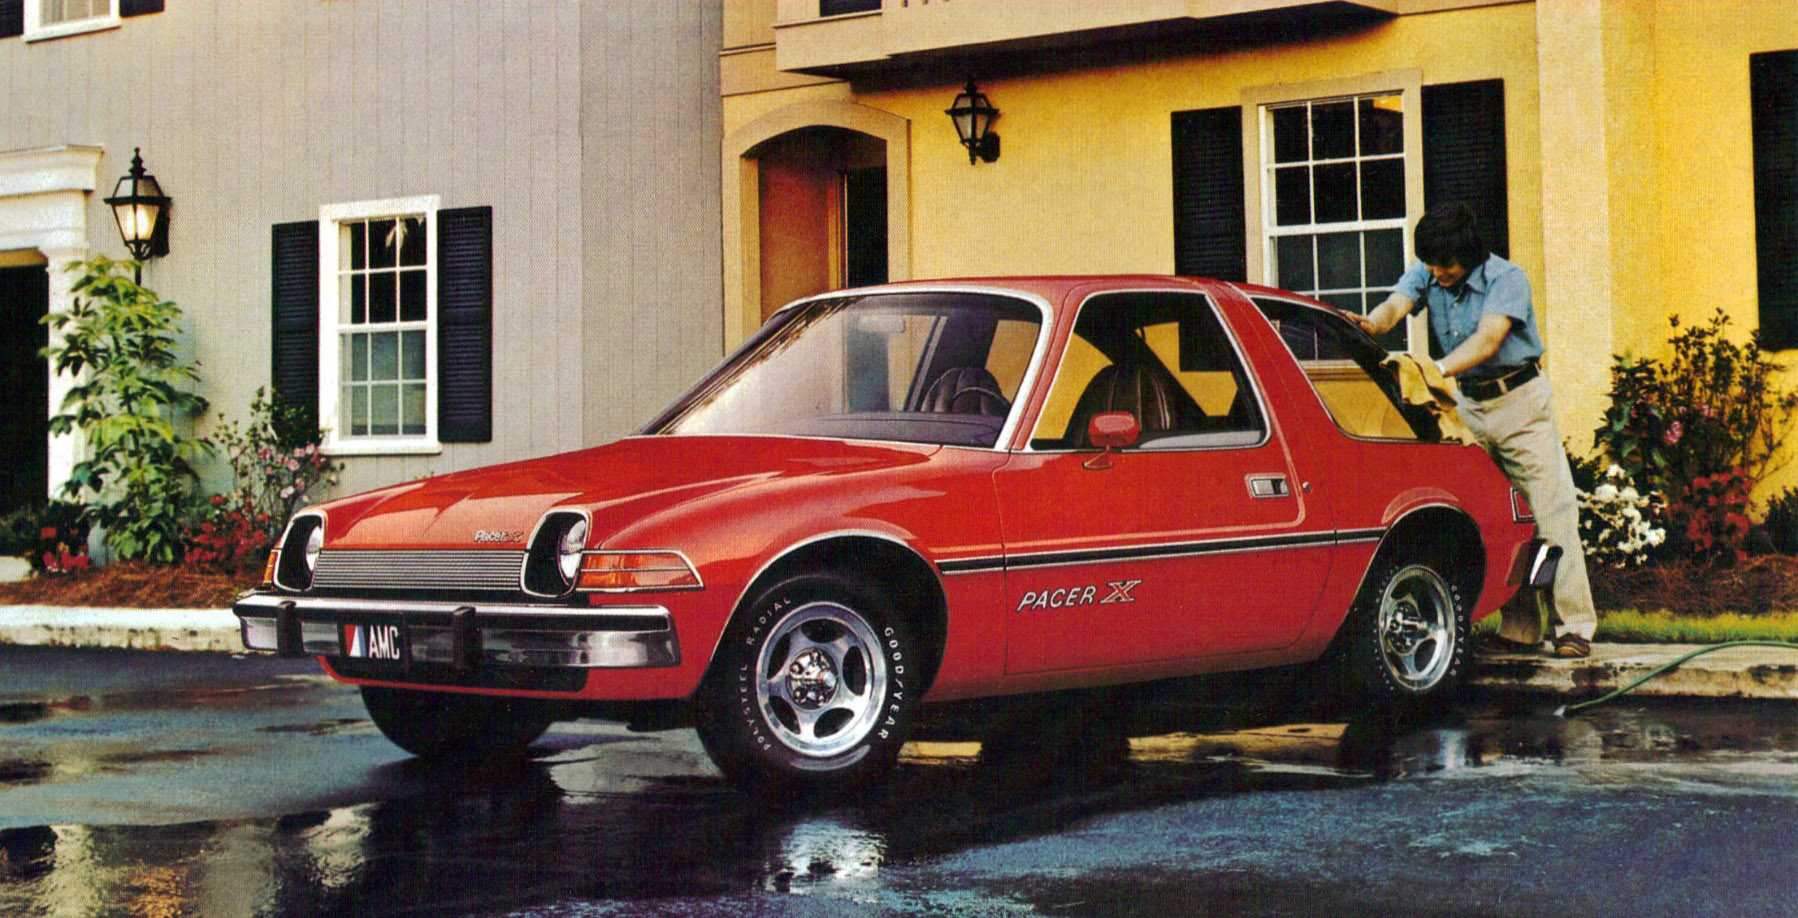 Documentary: The Unfortunate History of the AMC Pacer